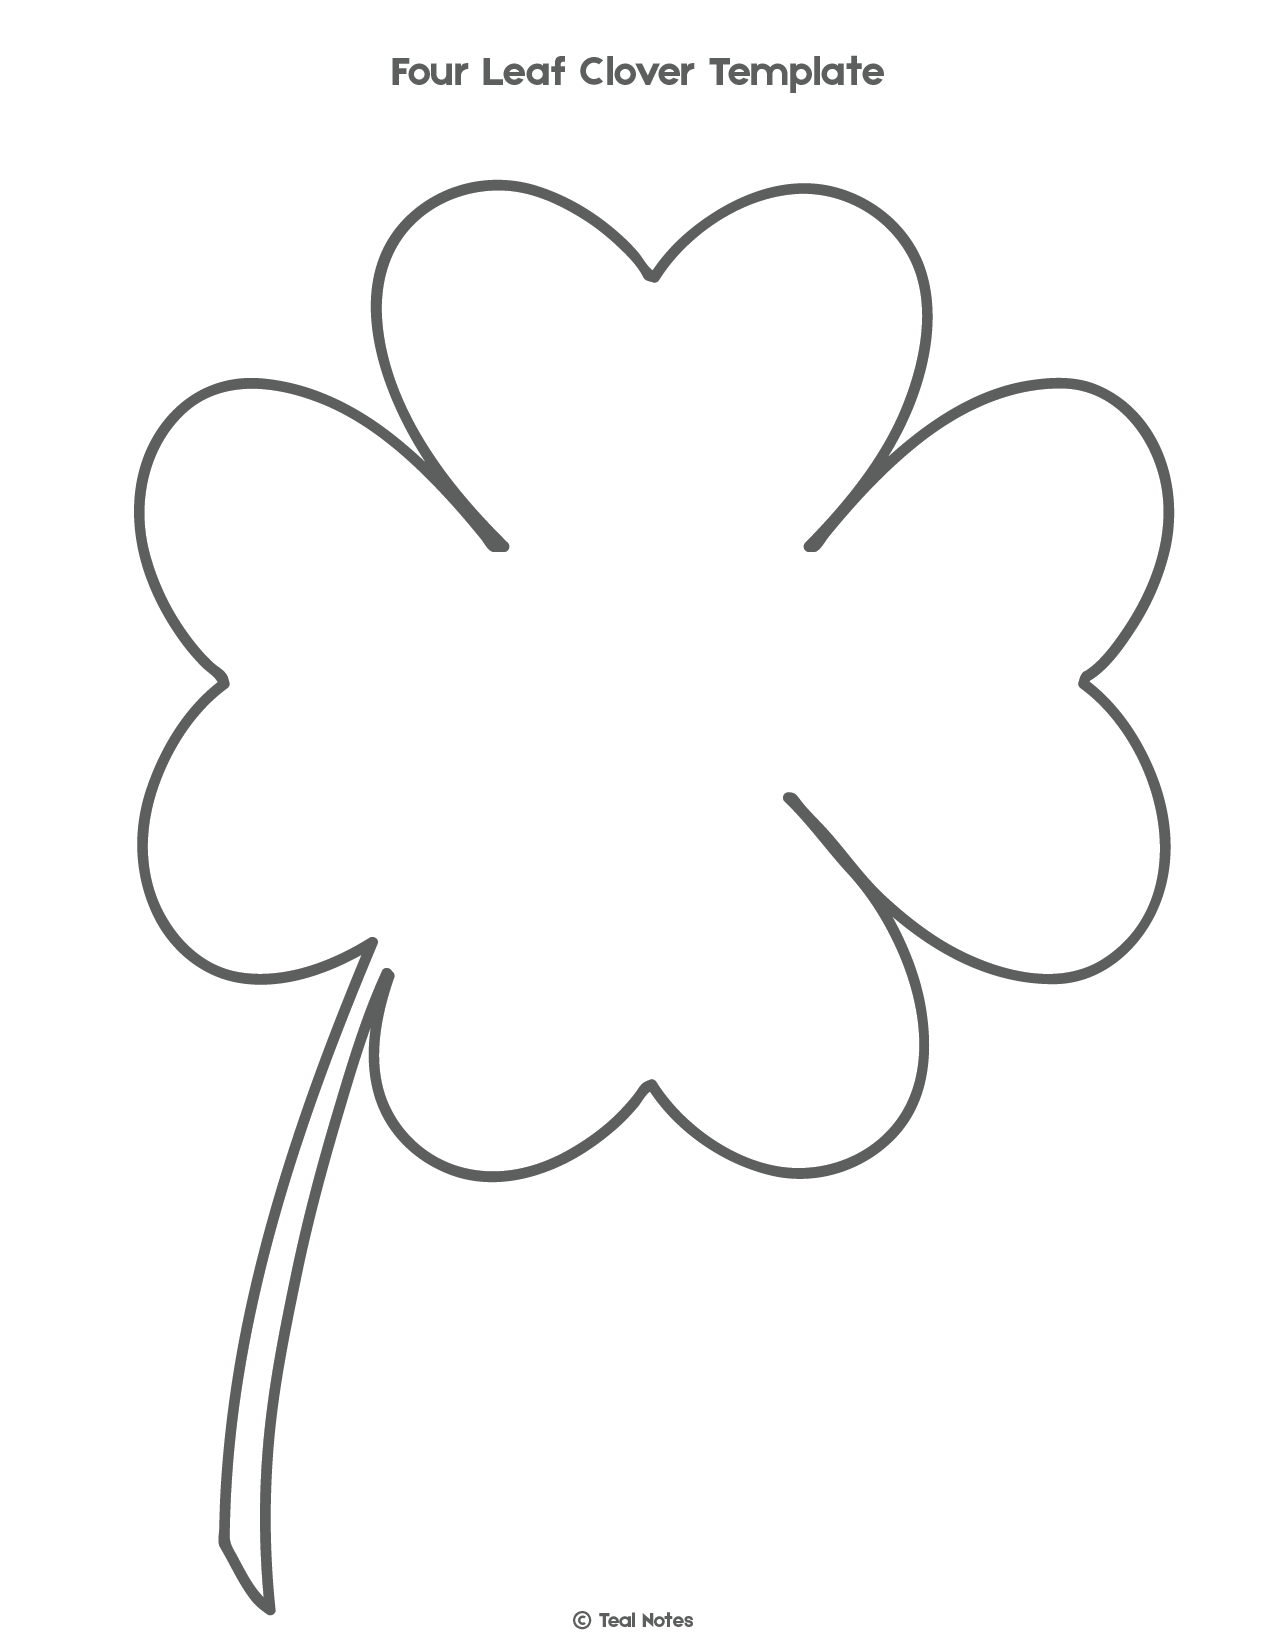 Four Leaf Clover Template: Free Shamrock Template Printable | Free - Four Leaf Clover Template Printable Free